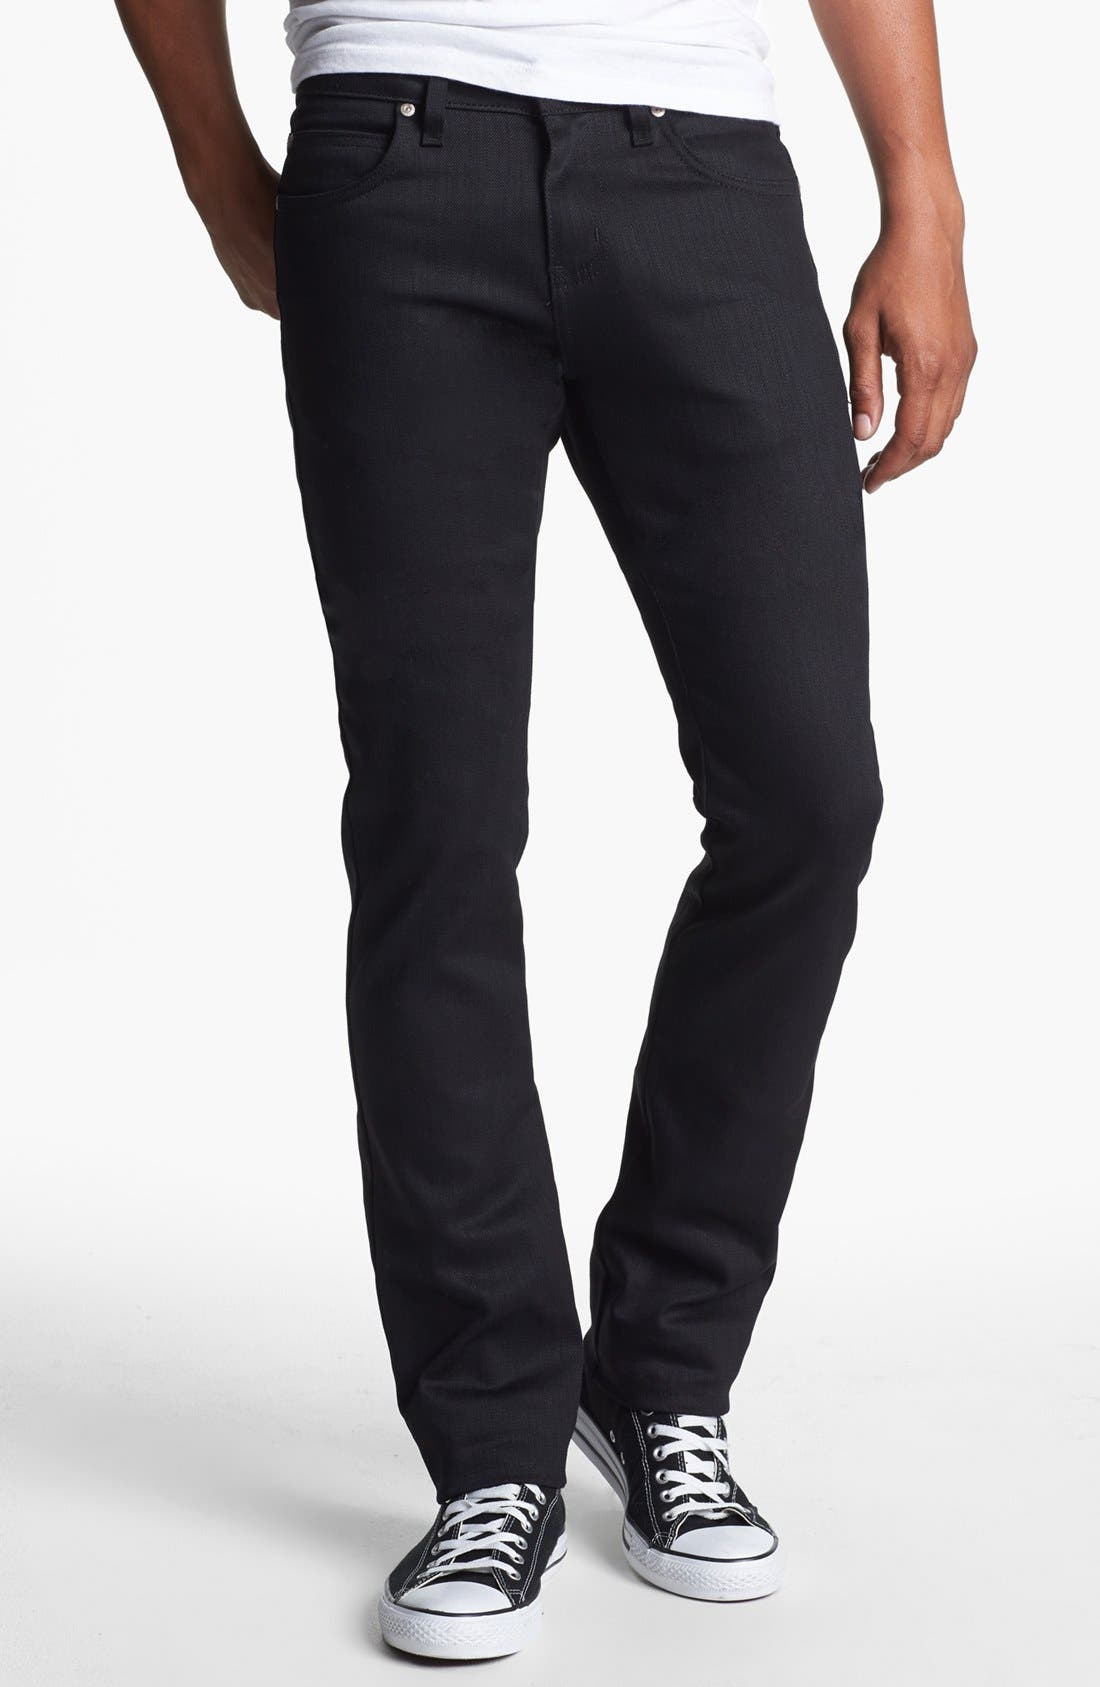 Naked & Famous Denim Skinny Guy Skinny Fit Jeans (Black Power Stretch)